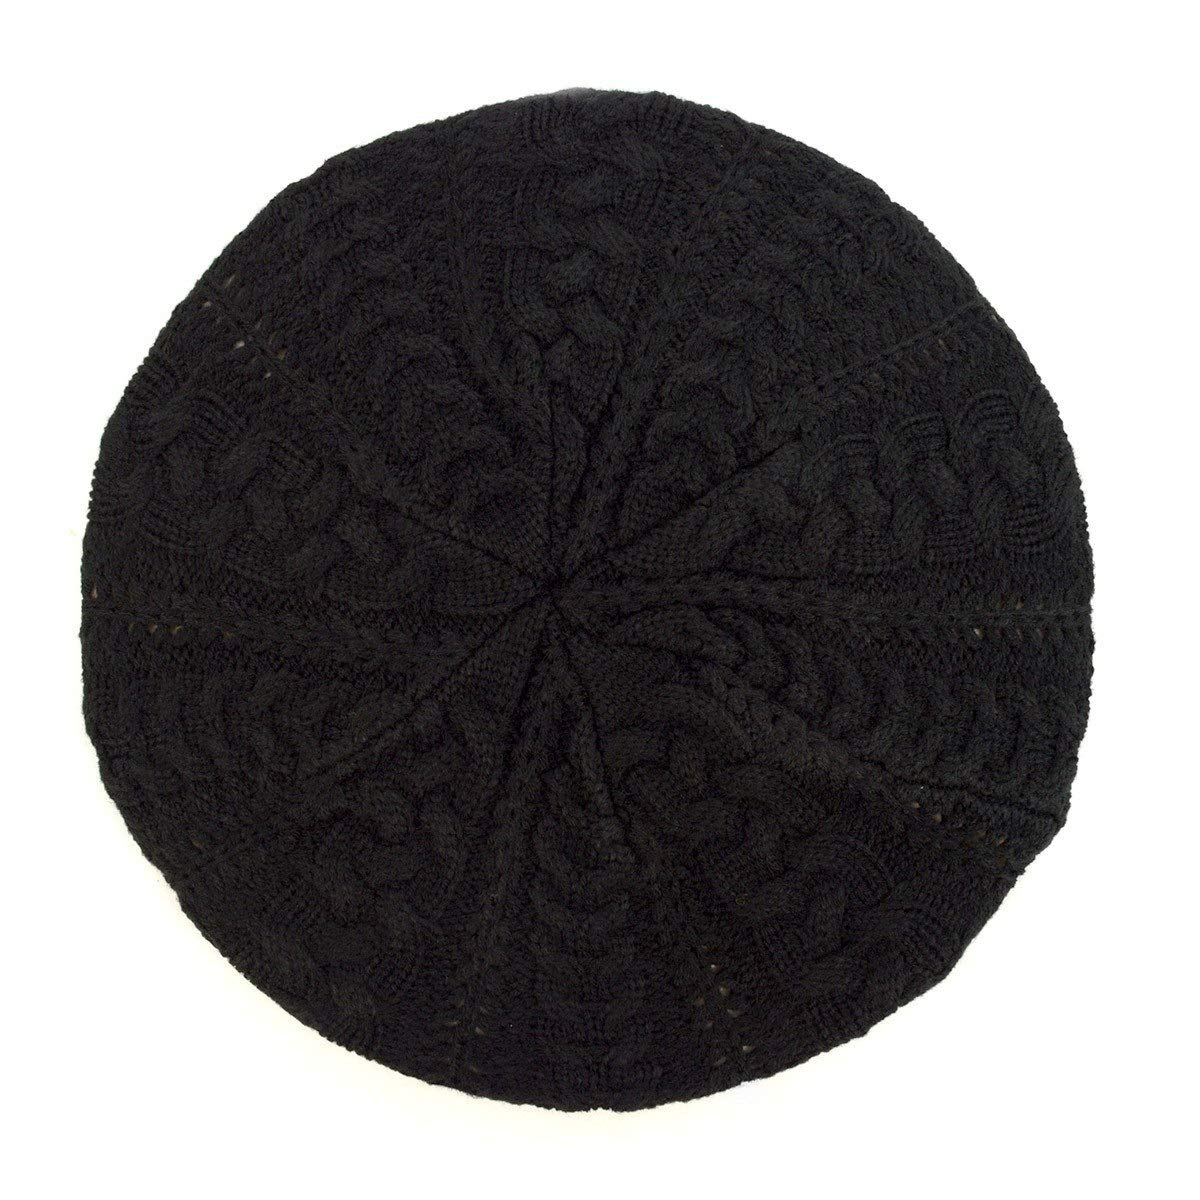 Black Women's Ladies Solid color Knitted Knit French Slouchy Beret Hat Cap